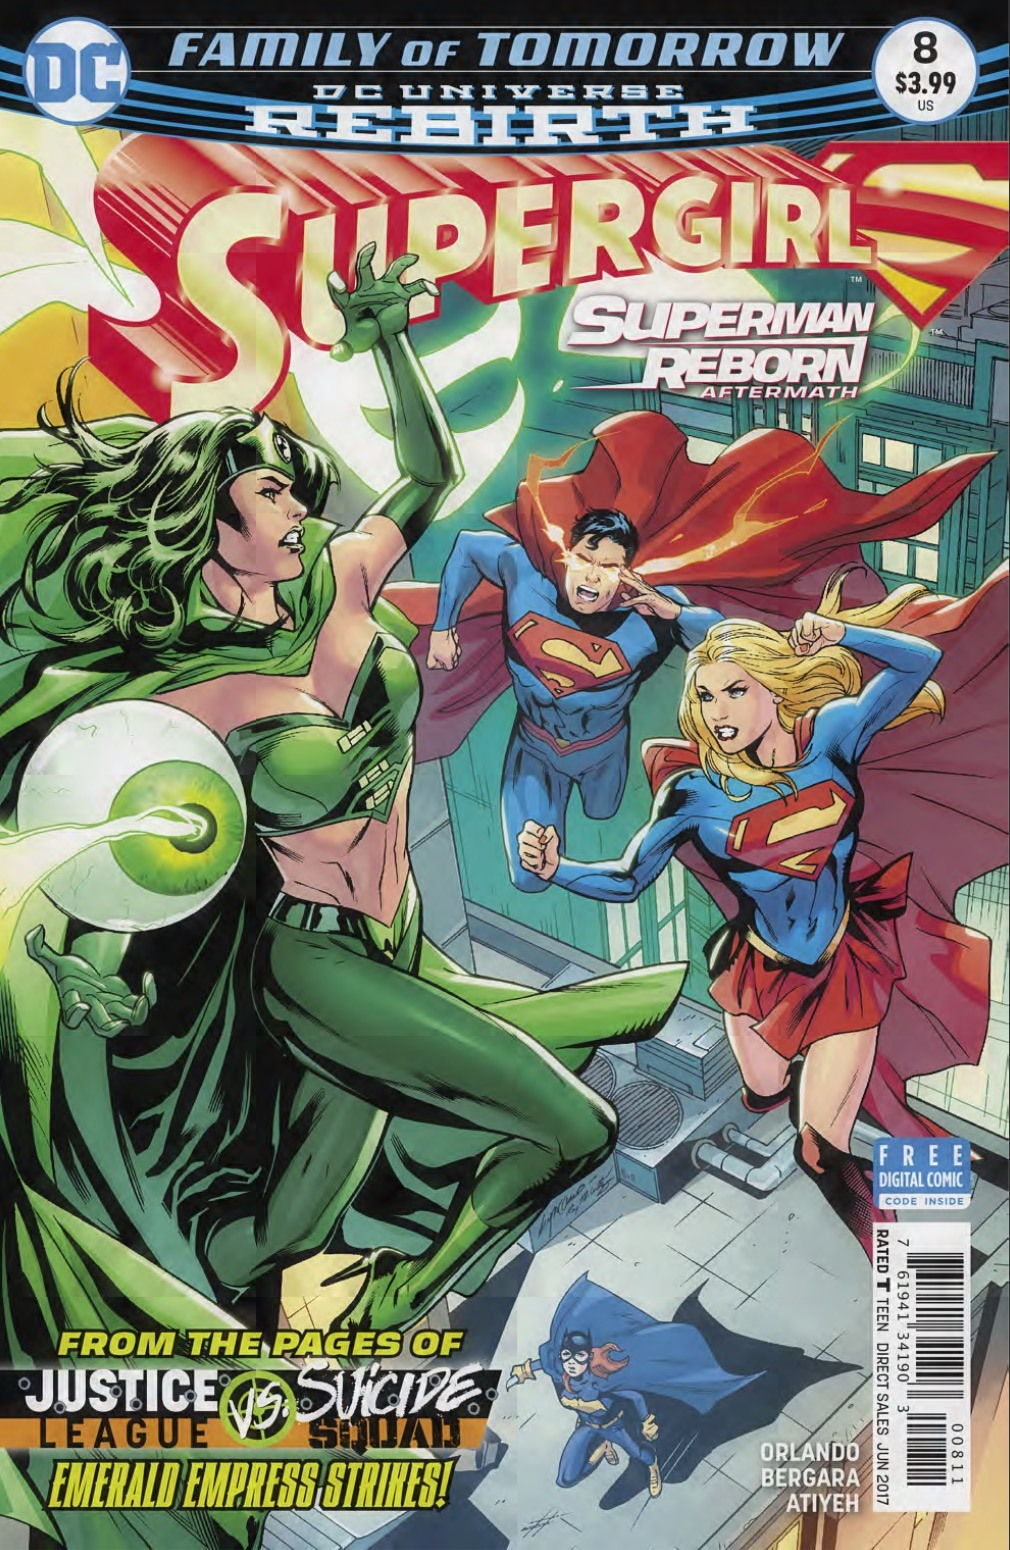 Supergirl #8 Review